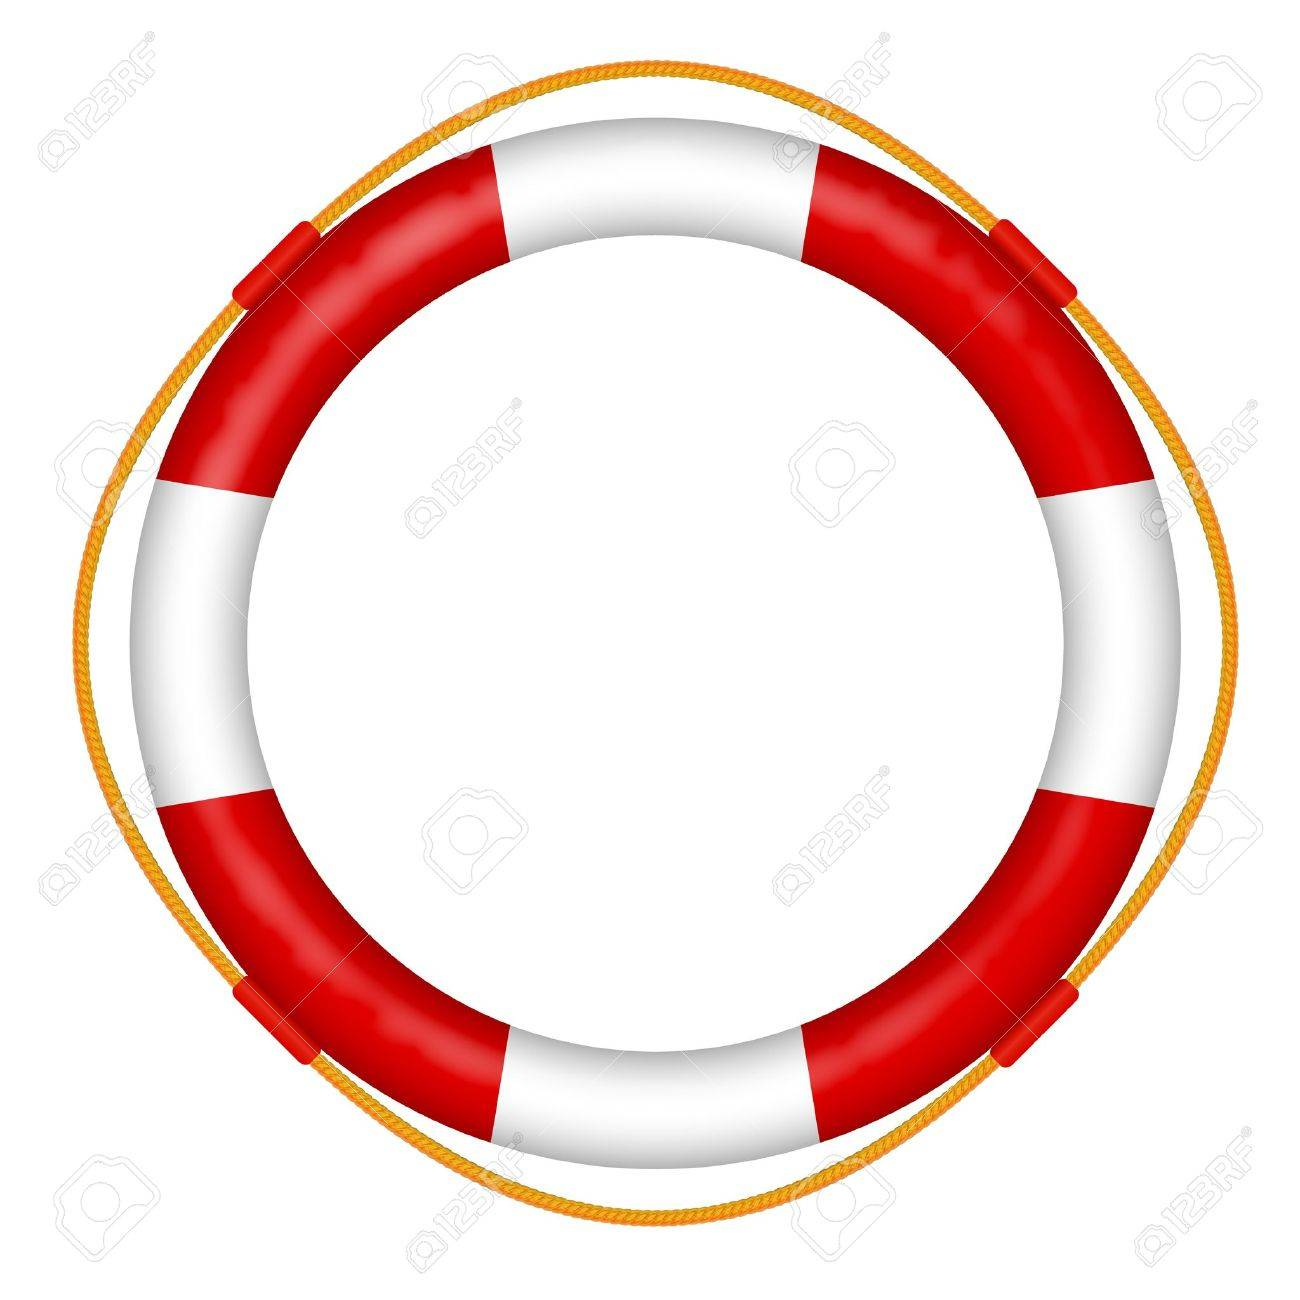 d7533fc7ad9 life buoy with rope - red and white lifebelt - sos help icon vector  illustration Stock